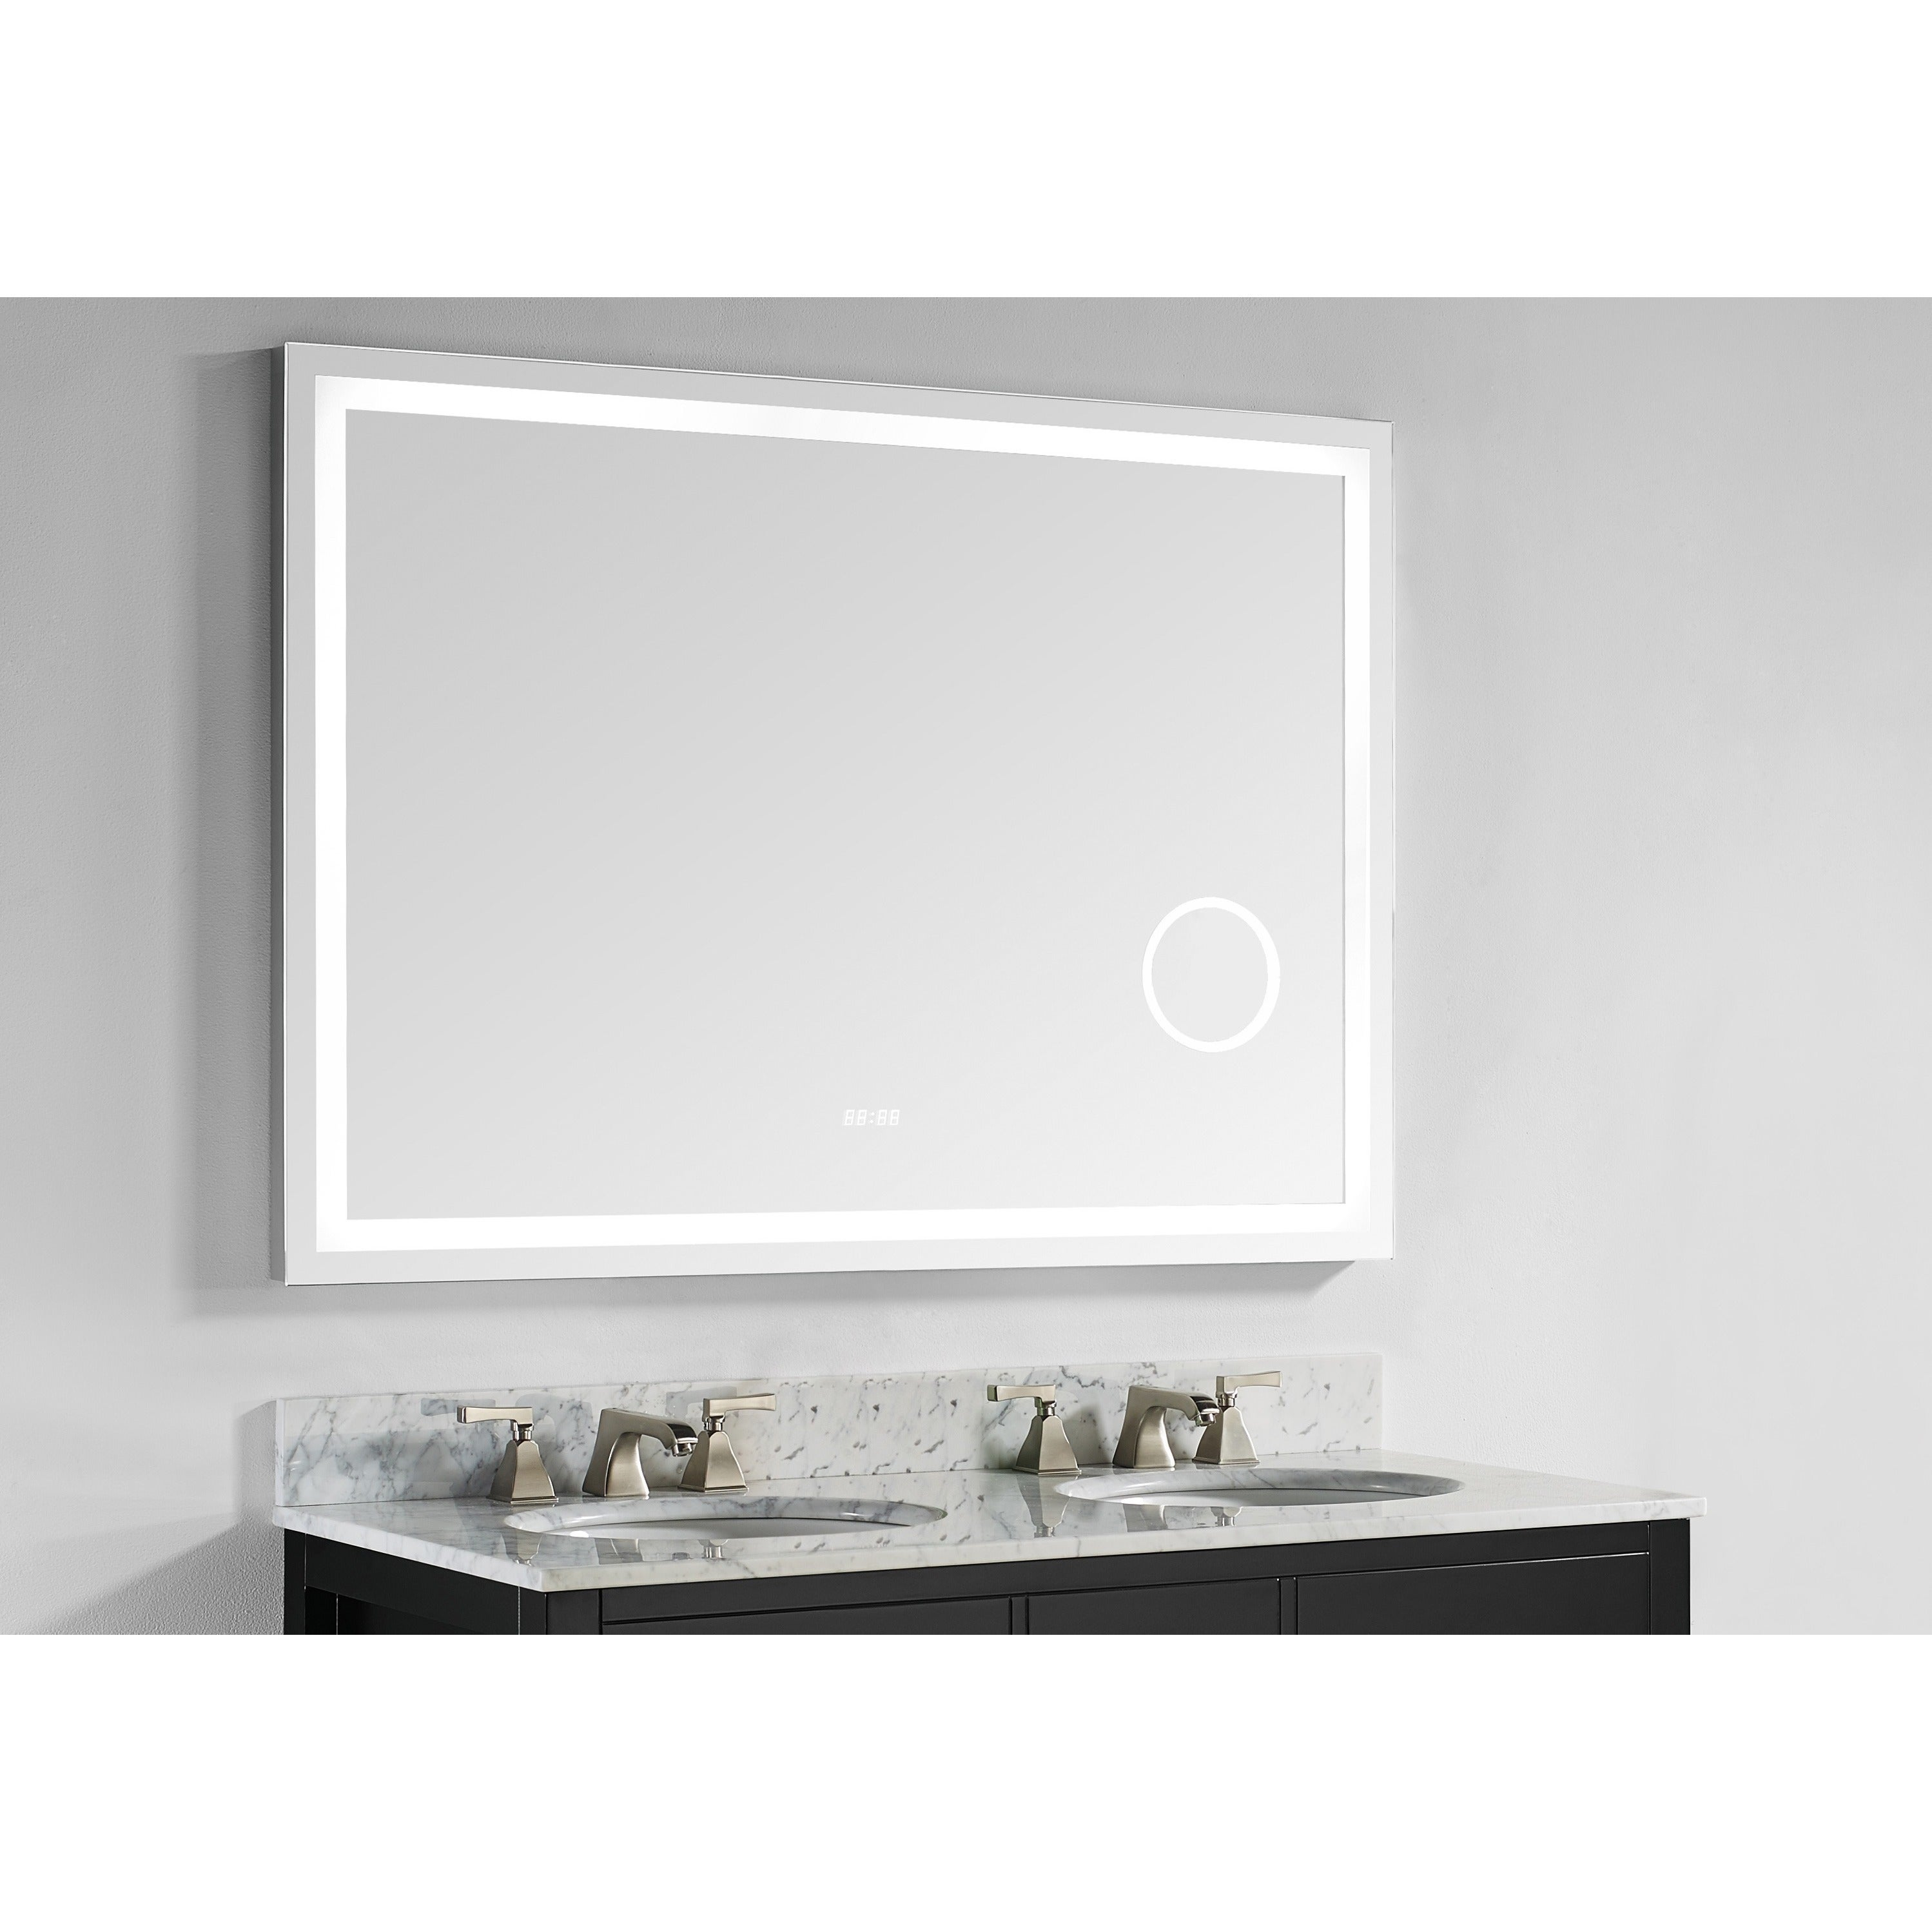 Shop Innoci-USA Eros LED Wall Mount Lighted Vanity Mirror Featuring ...